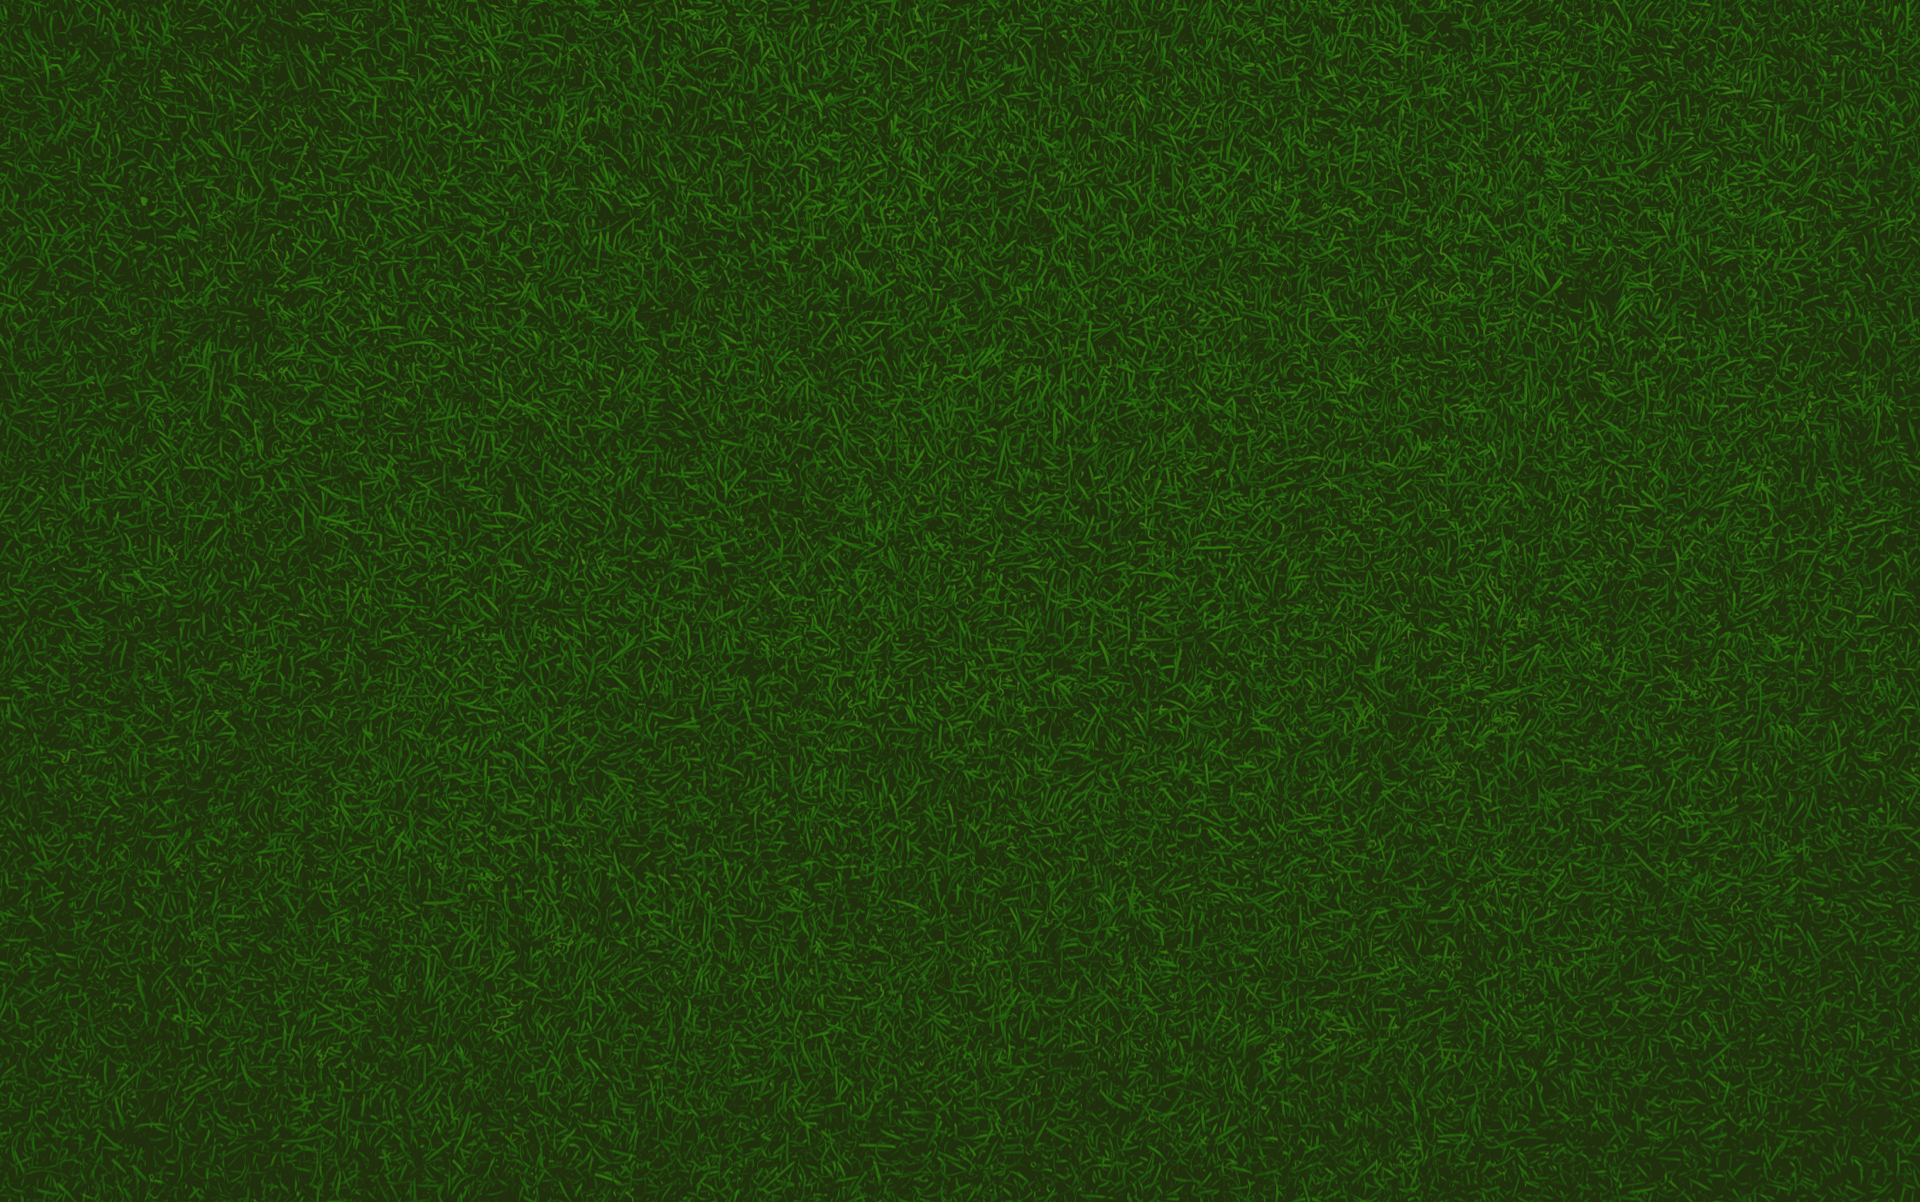 Green grass from above